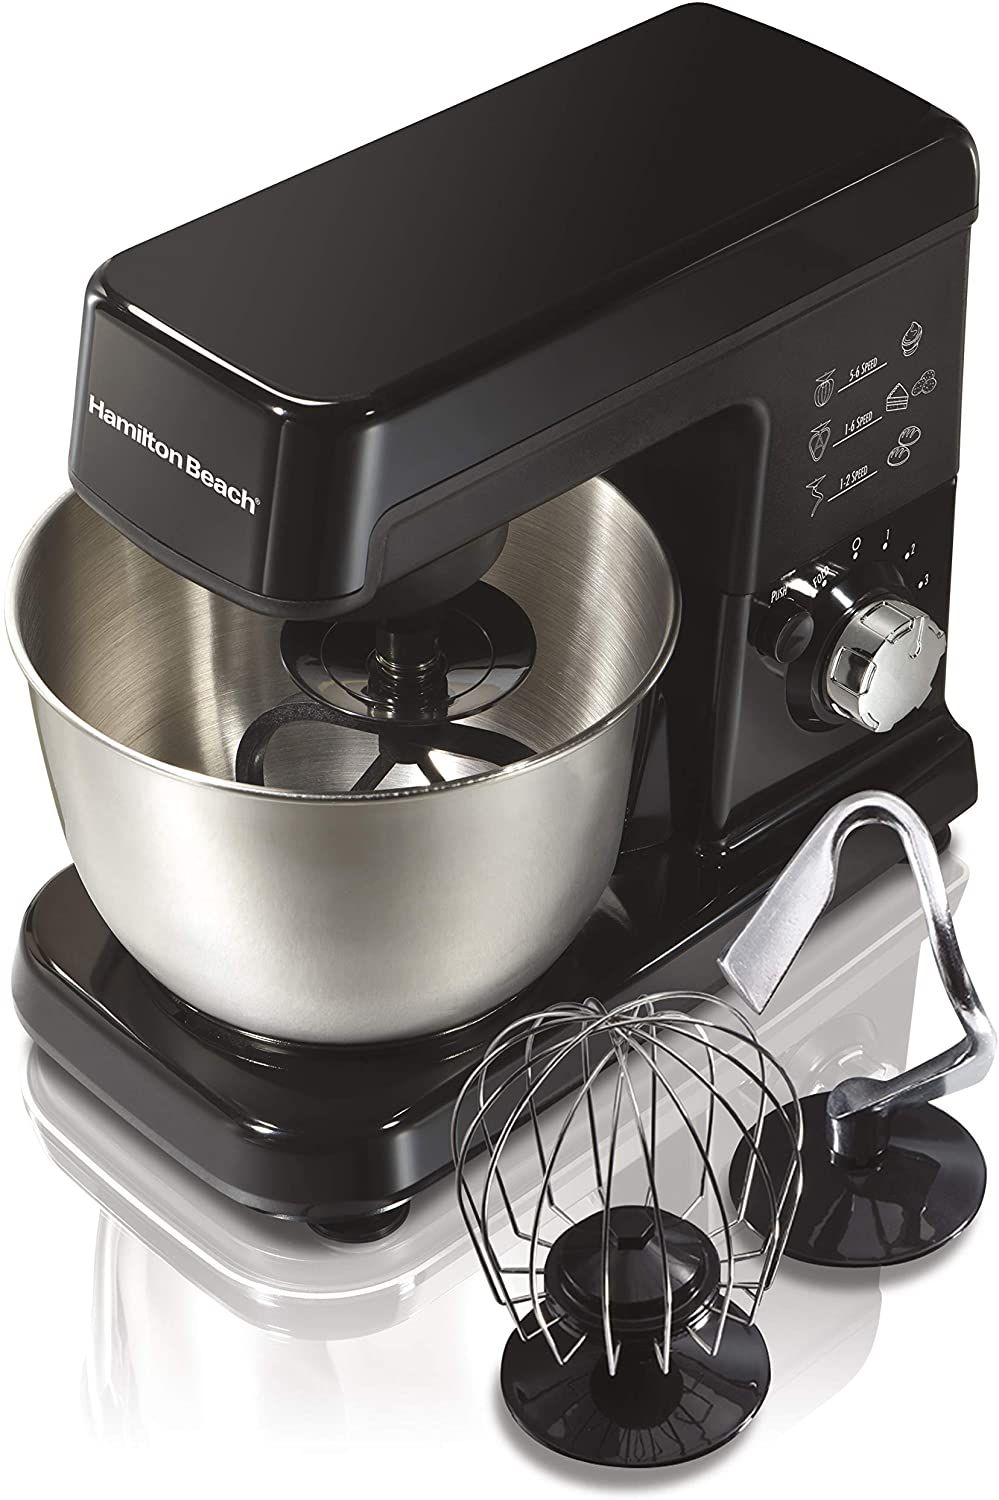 Hamilton beach 6 speed electric stand mixer with stainless